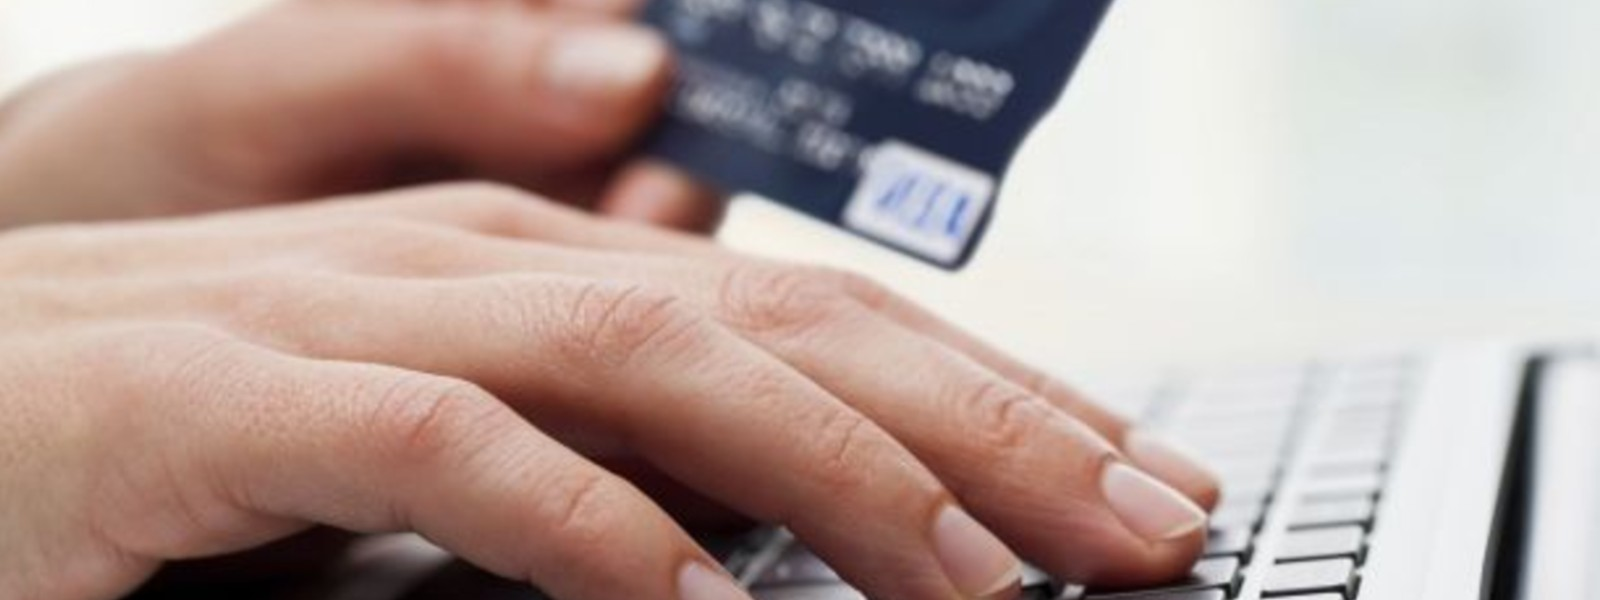 Only use your credit card to make purchases from a reliable website; SL-CERT